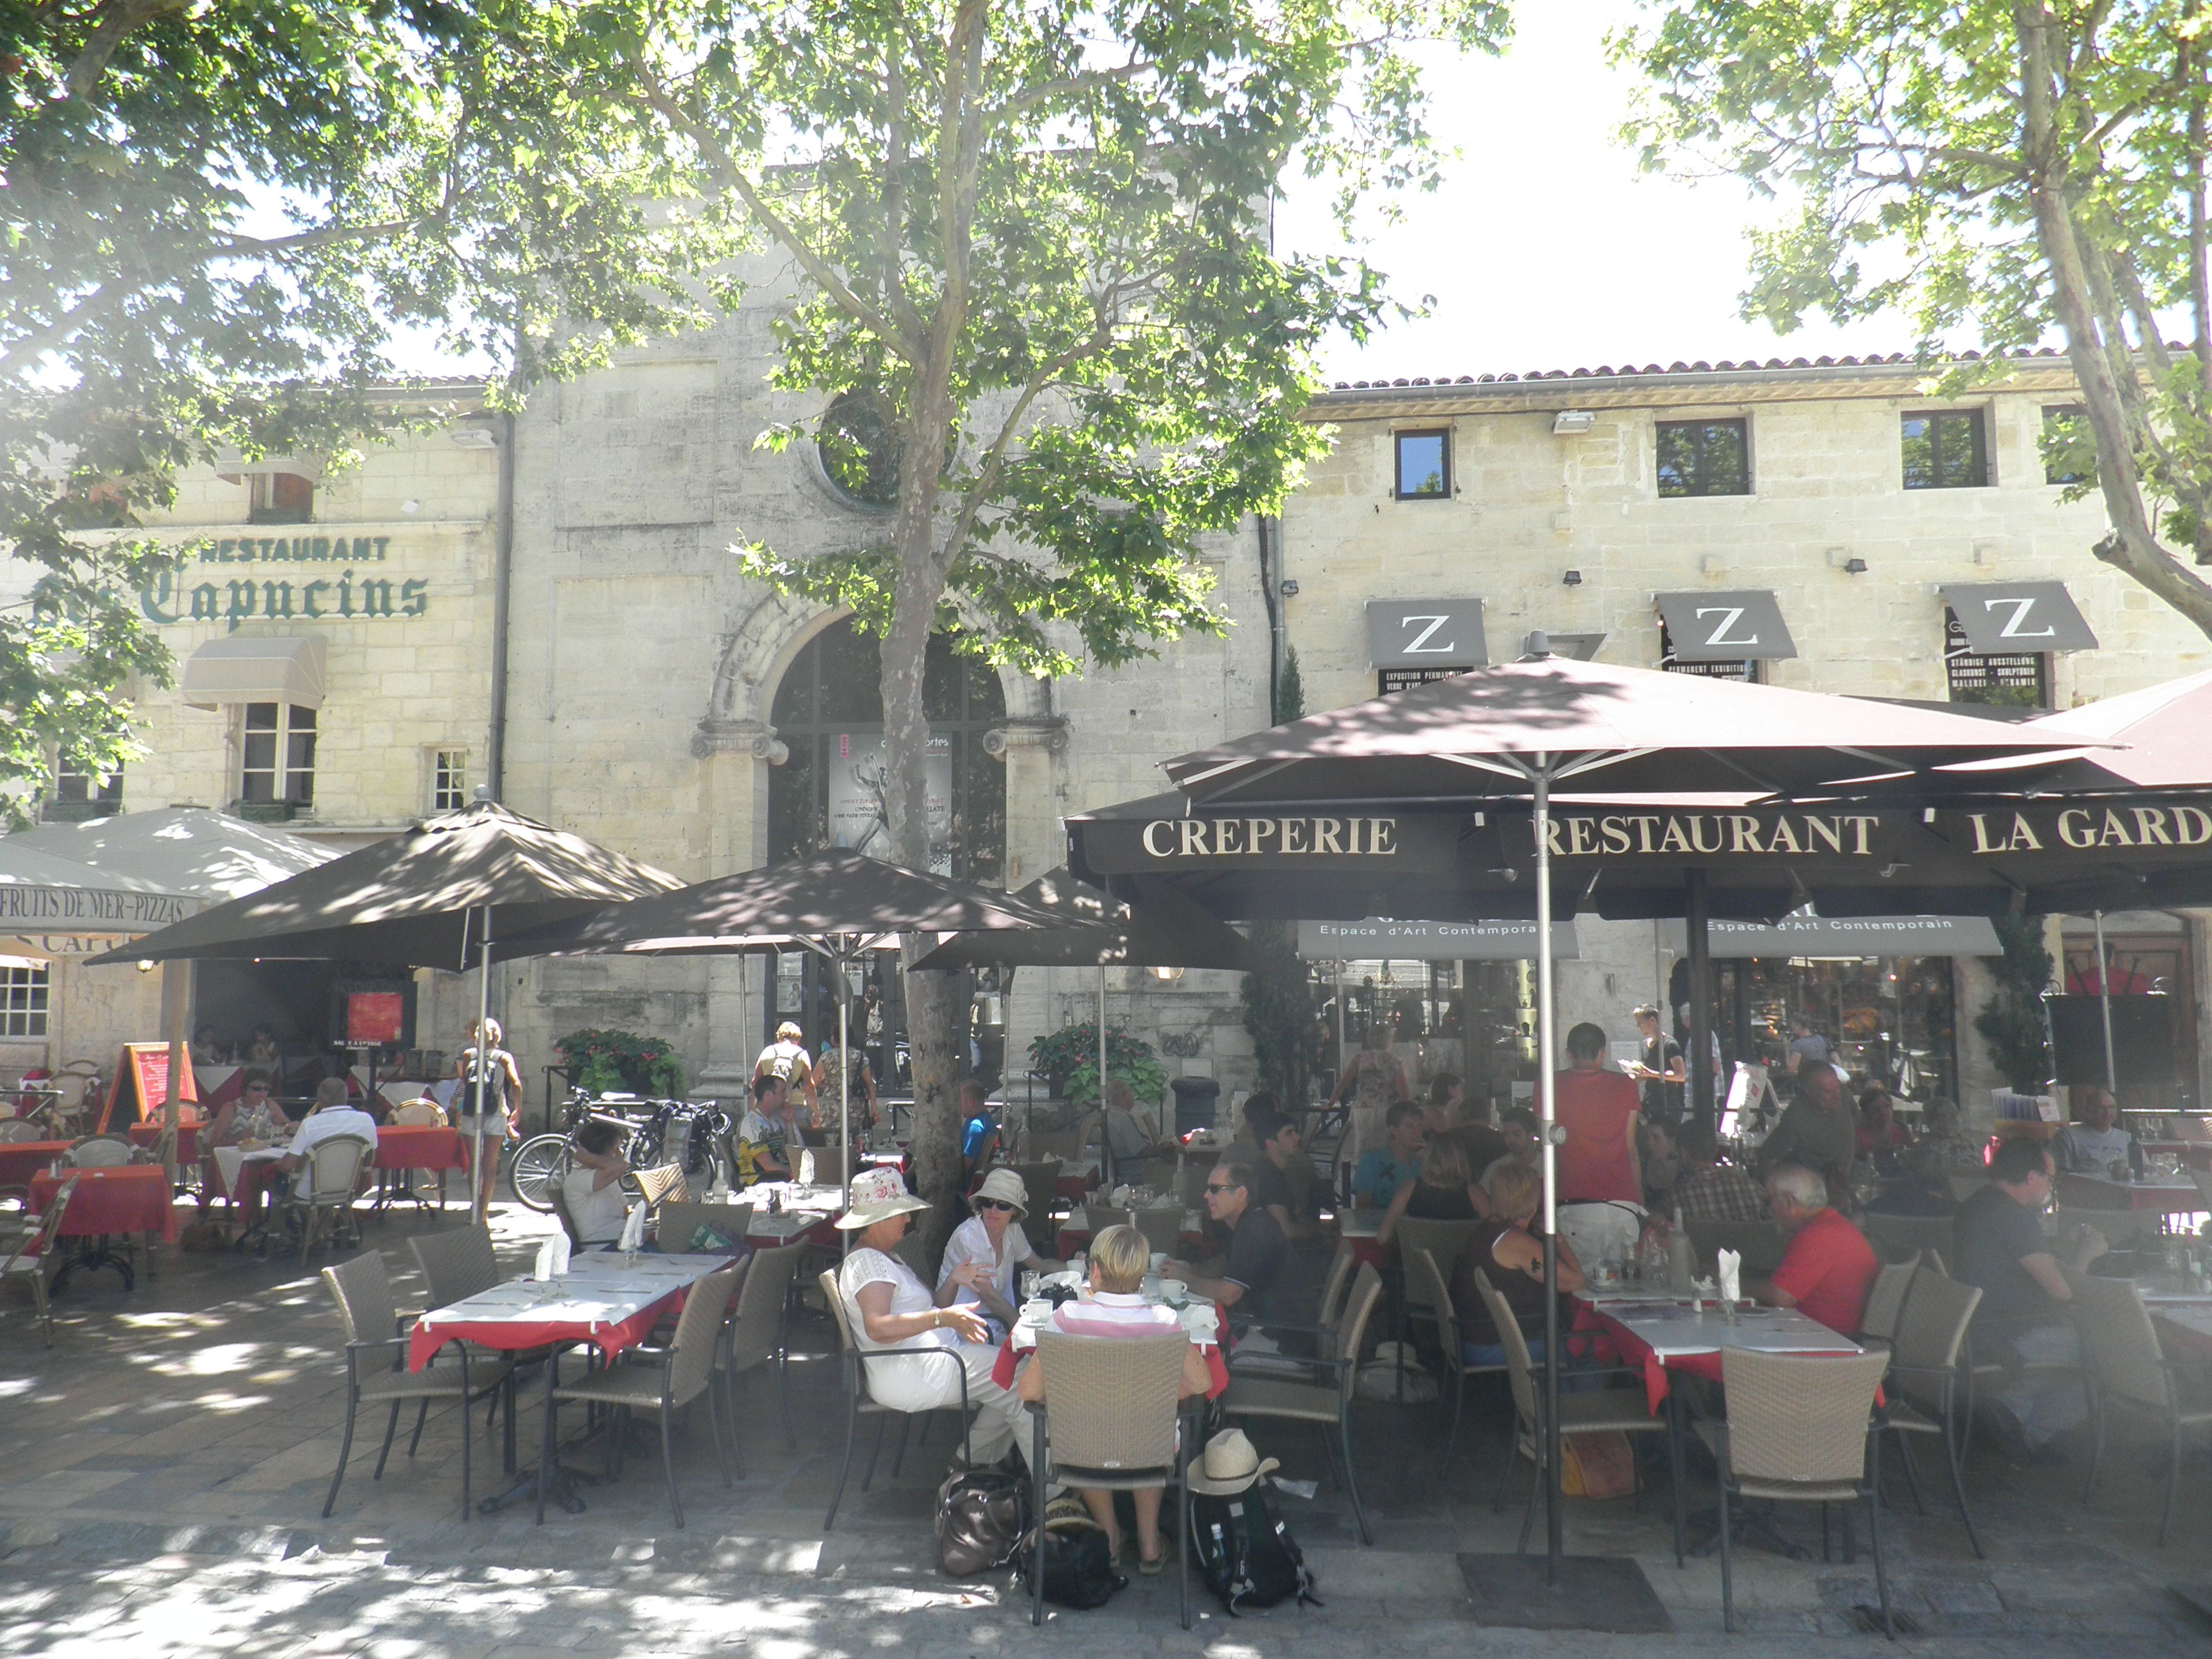 We Had Lunch At La Gardiane Restaurant In The Walled City Of Aigues Mortes In Southern France Walled City Aigues Mortes France